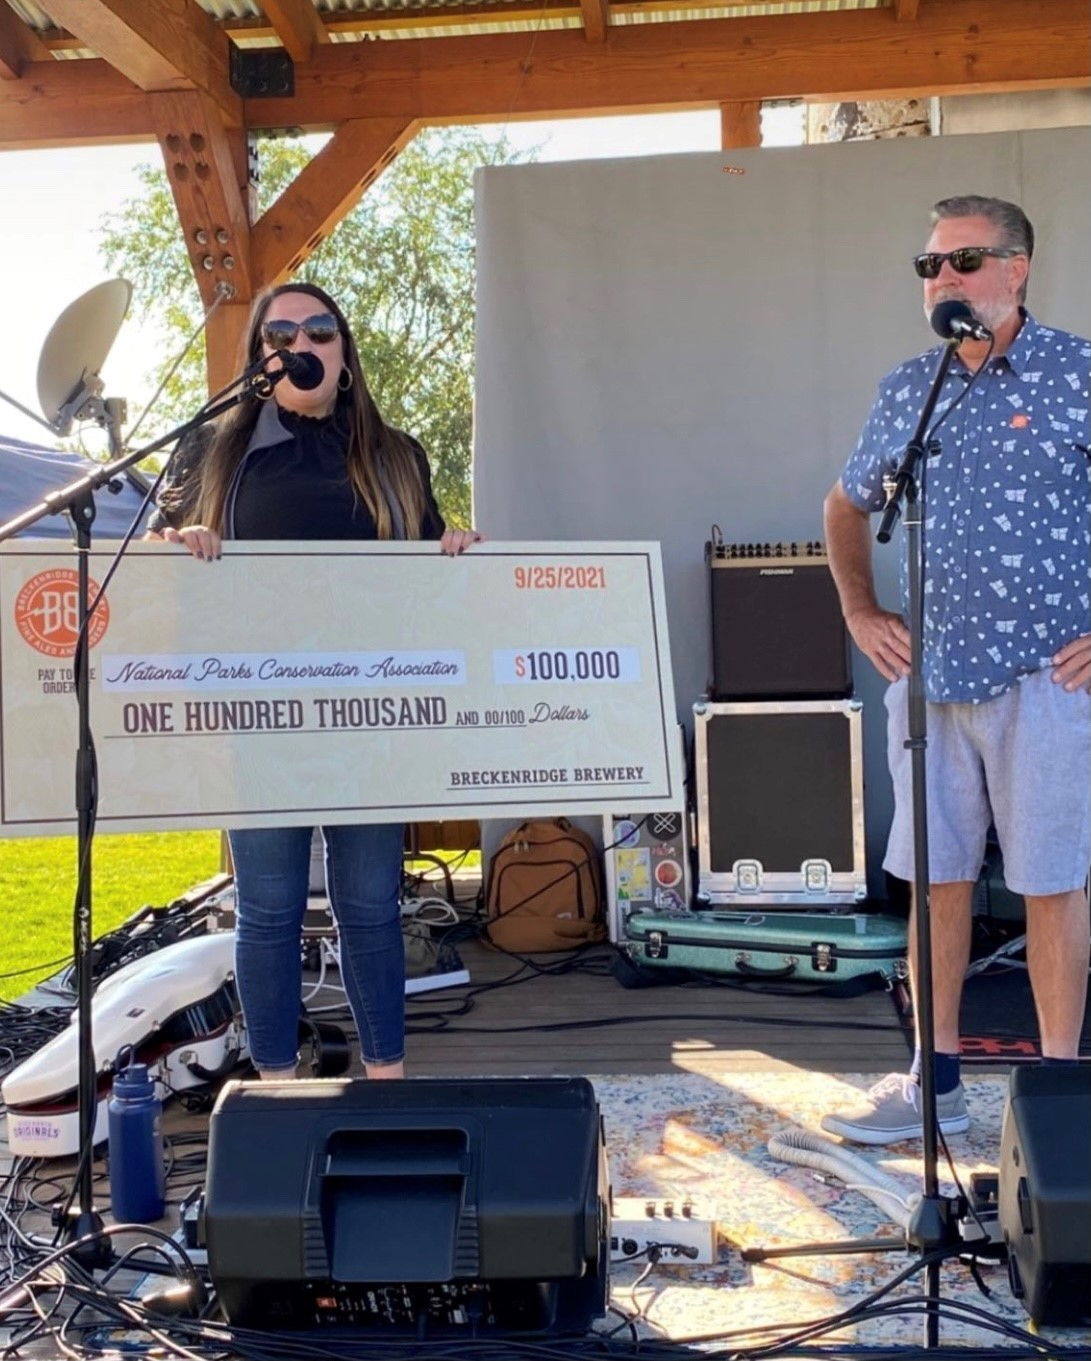 Breckenridge Brewery presents NPCA with a donation for $100,000. 2 people pictured in front of microphones with a big check for $100,000